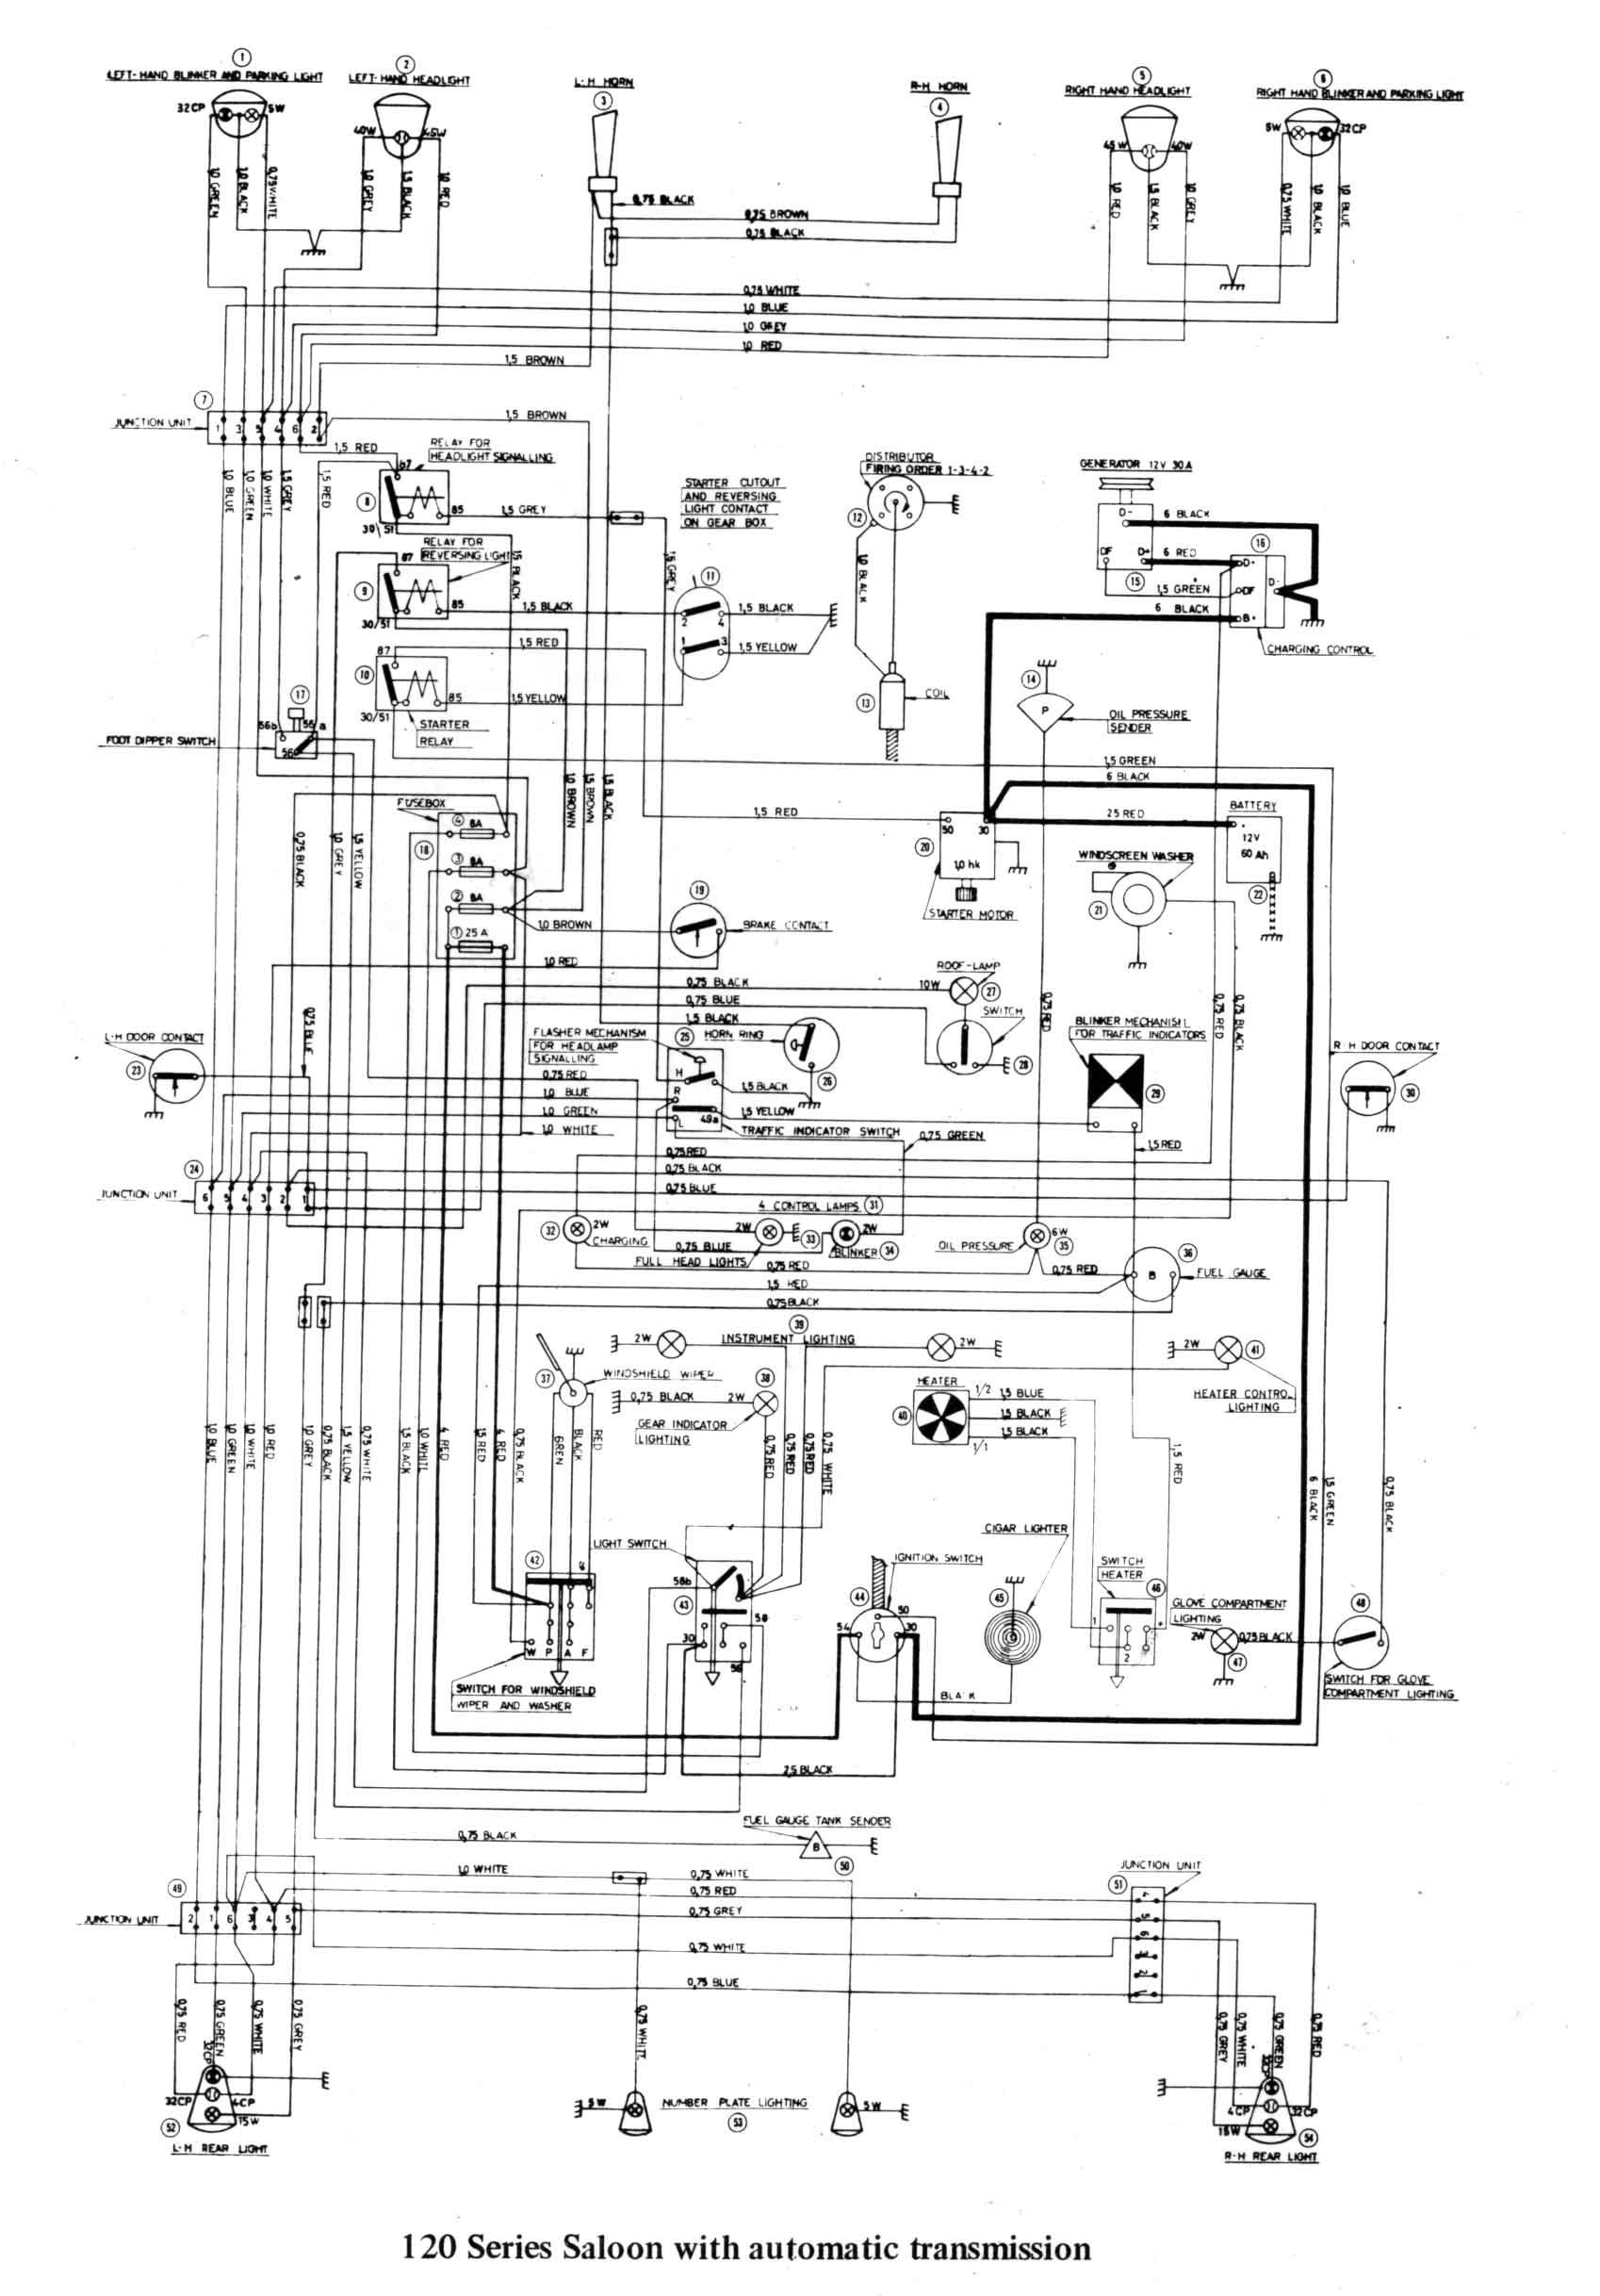 Stupendous 2003 Saab Engine Wiring Wiring Diagram Wiring Cloud Cosmuggs Outletorg